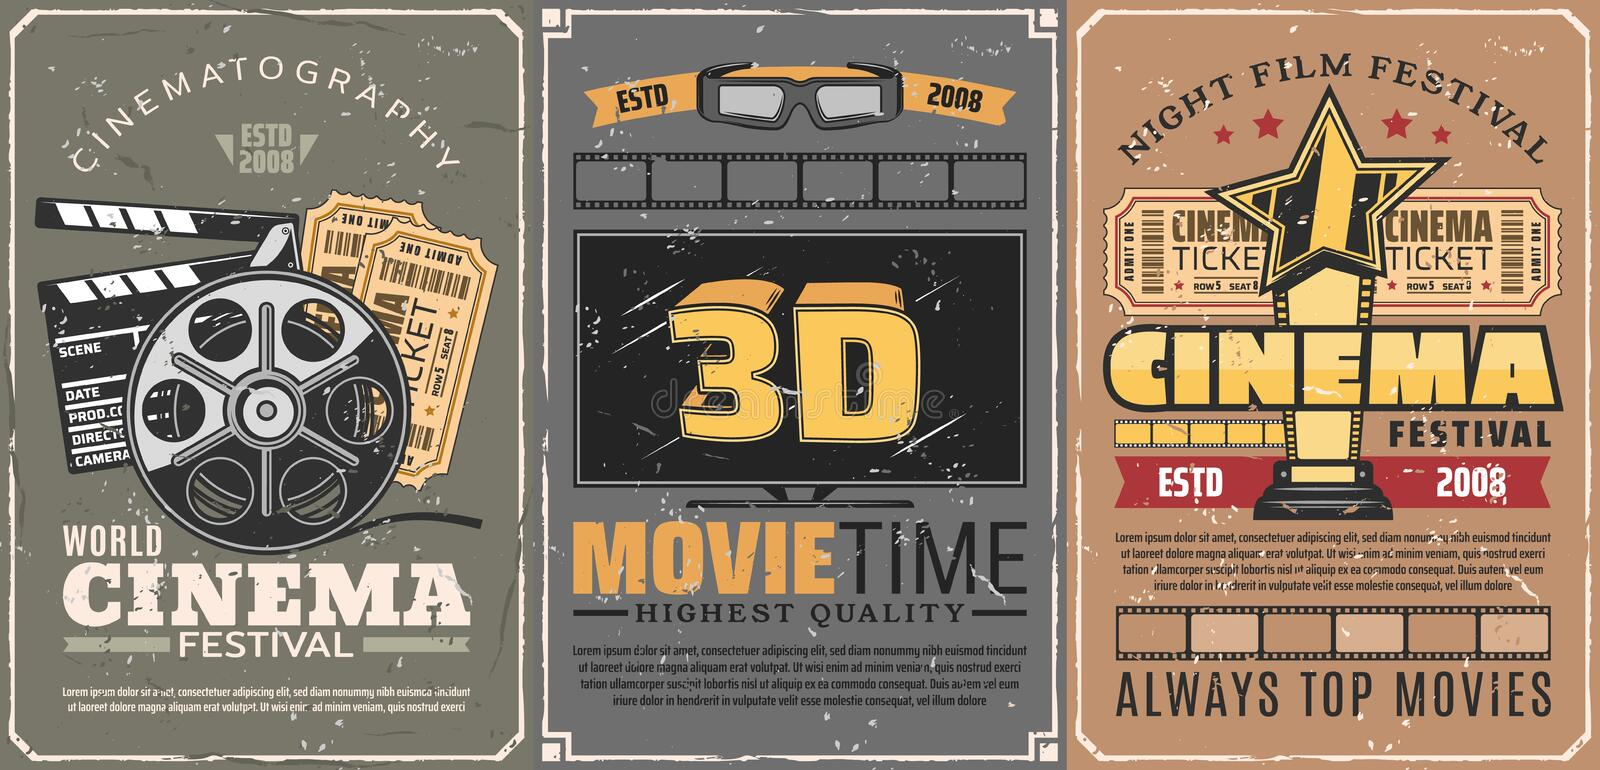 Cinema or movie theater, night film festival royalty free illustration